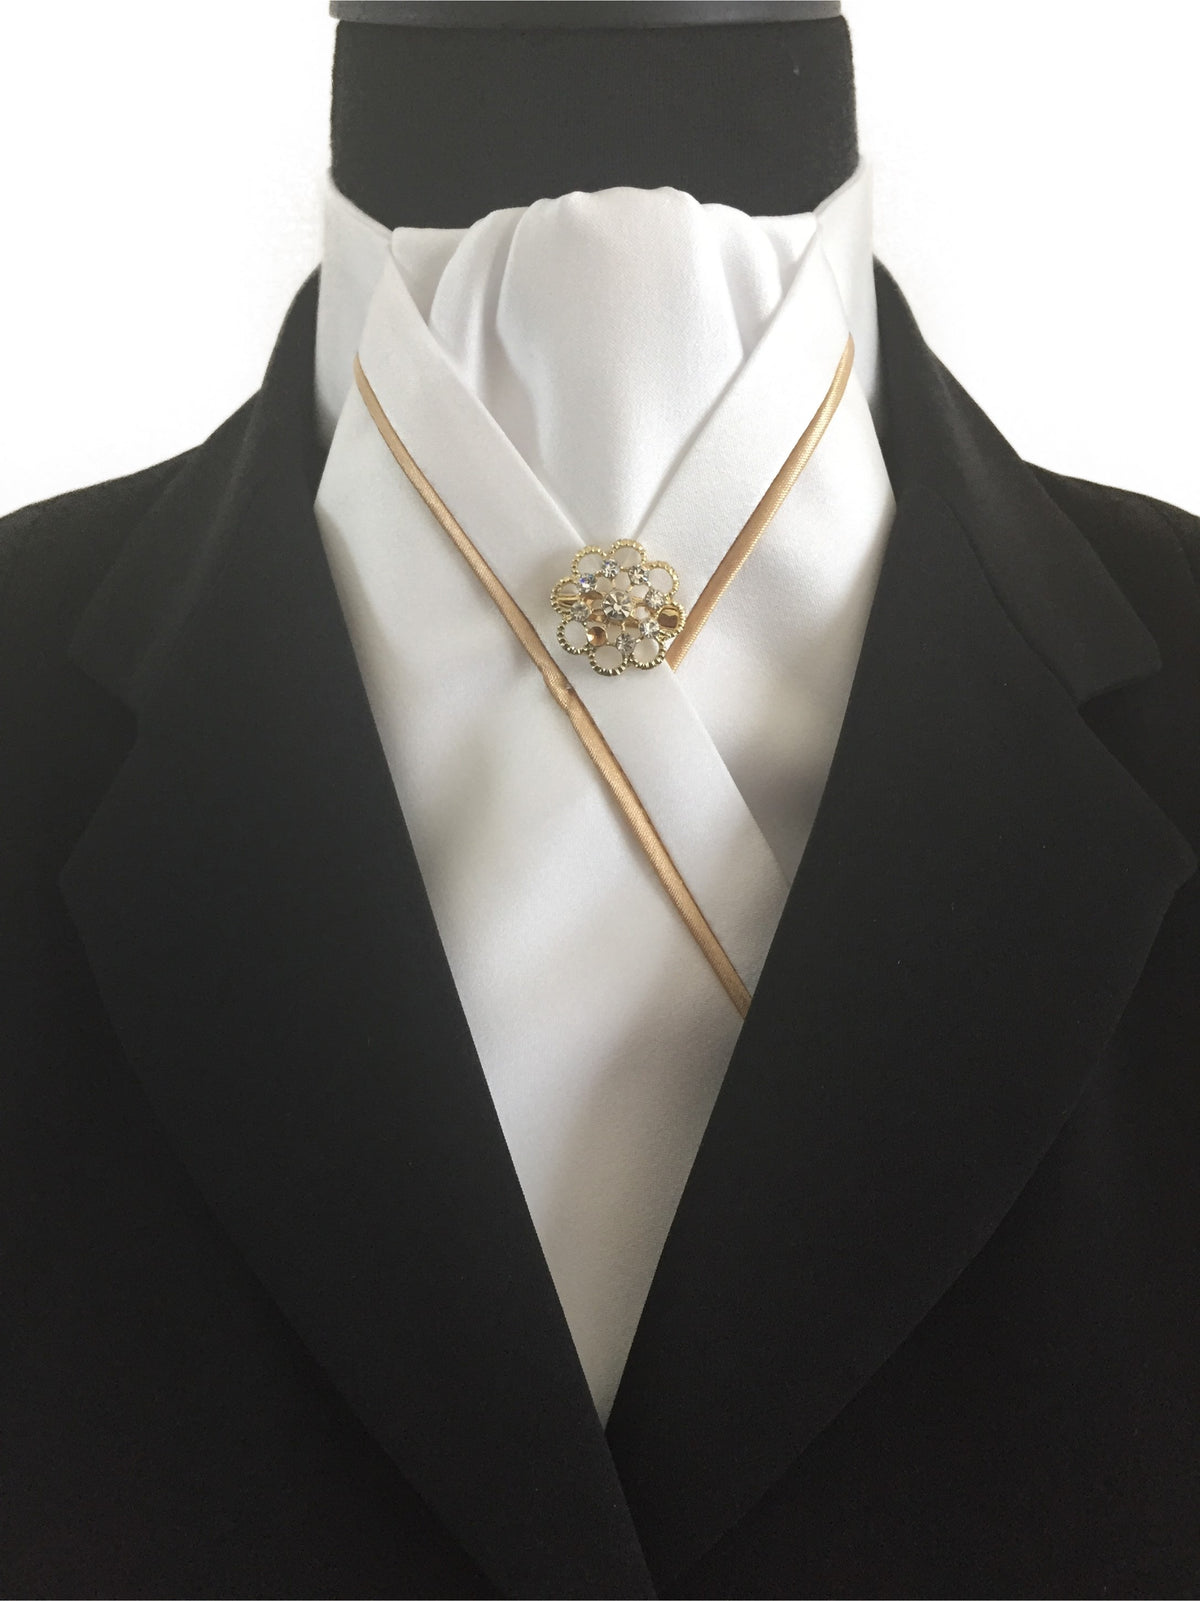 White Stock Tie with Gold Piping